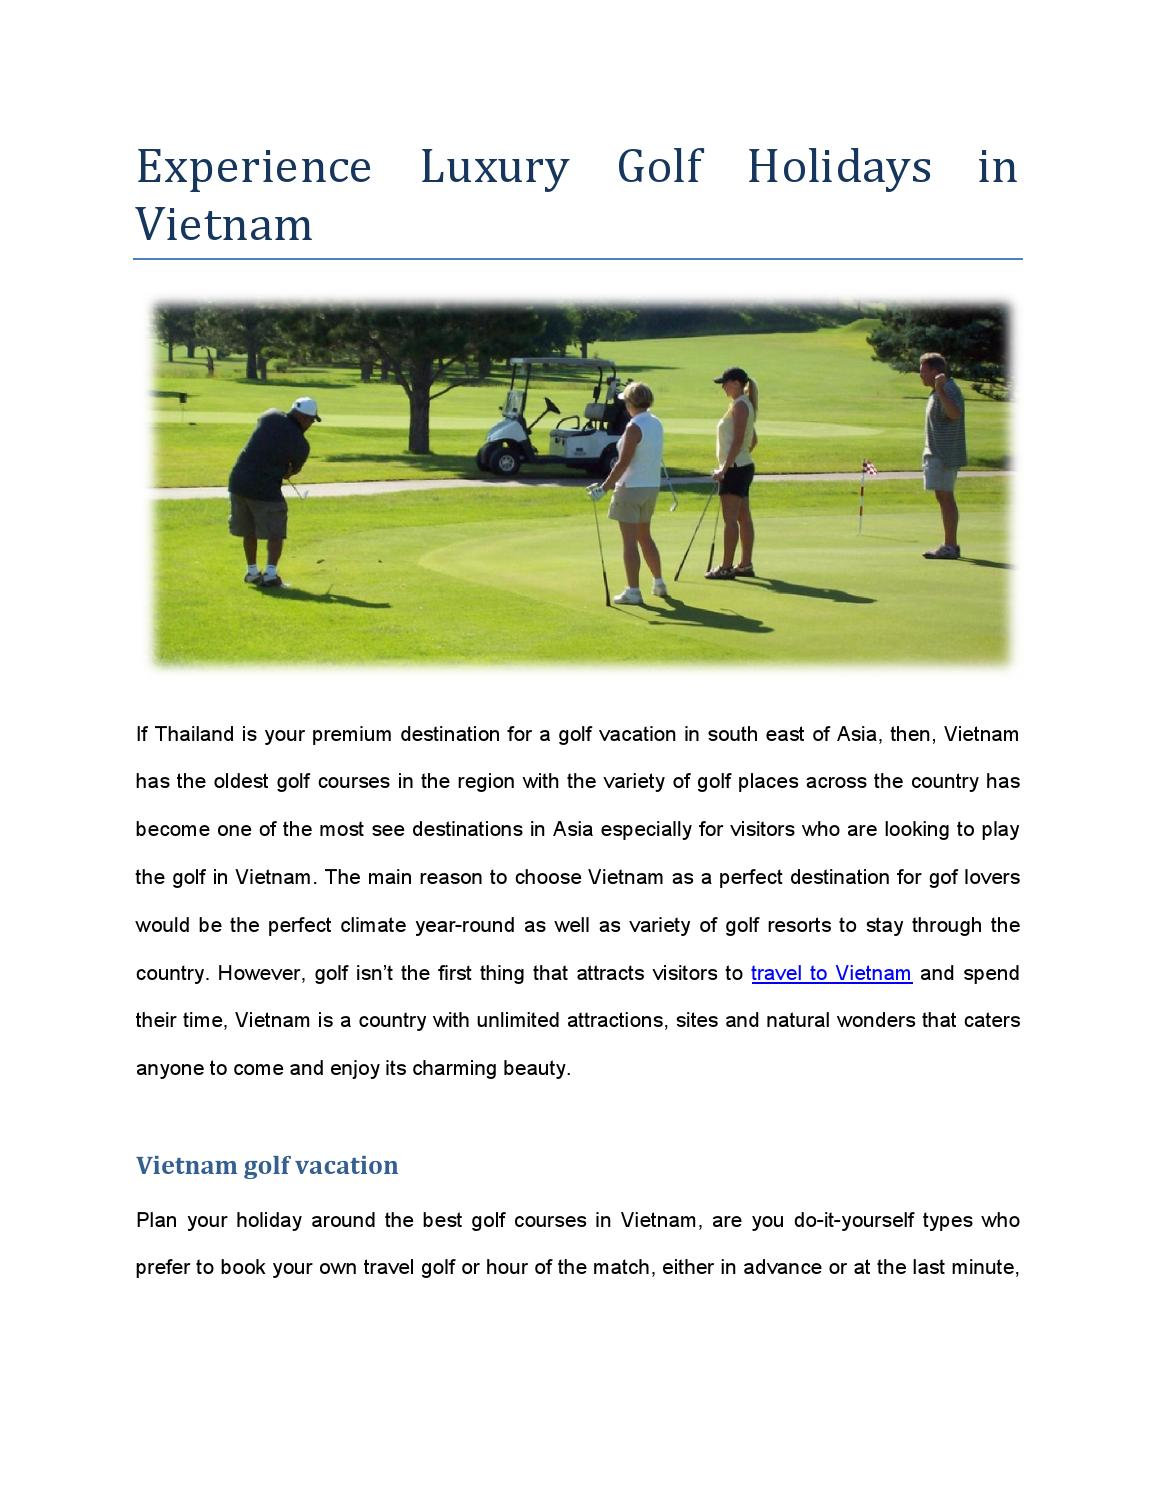 Experience luxury golf holidays in vietnam by luxury travel vietnam experience luxury golf holidays in vietnam by luxury travel vietnam issuu solutioingenieria Gallery